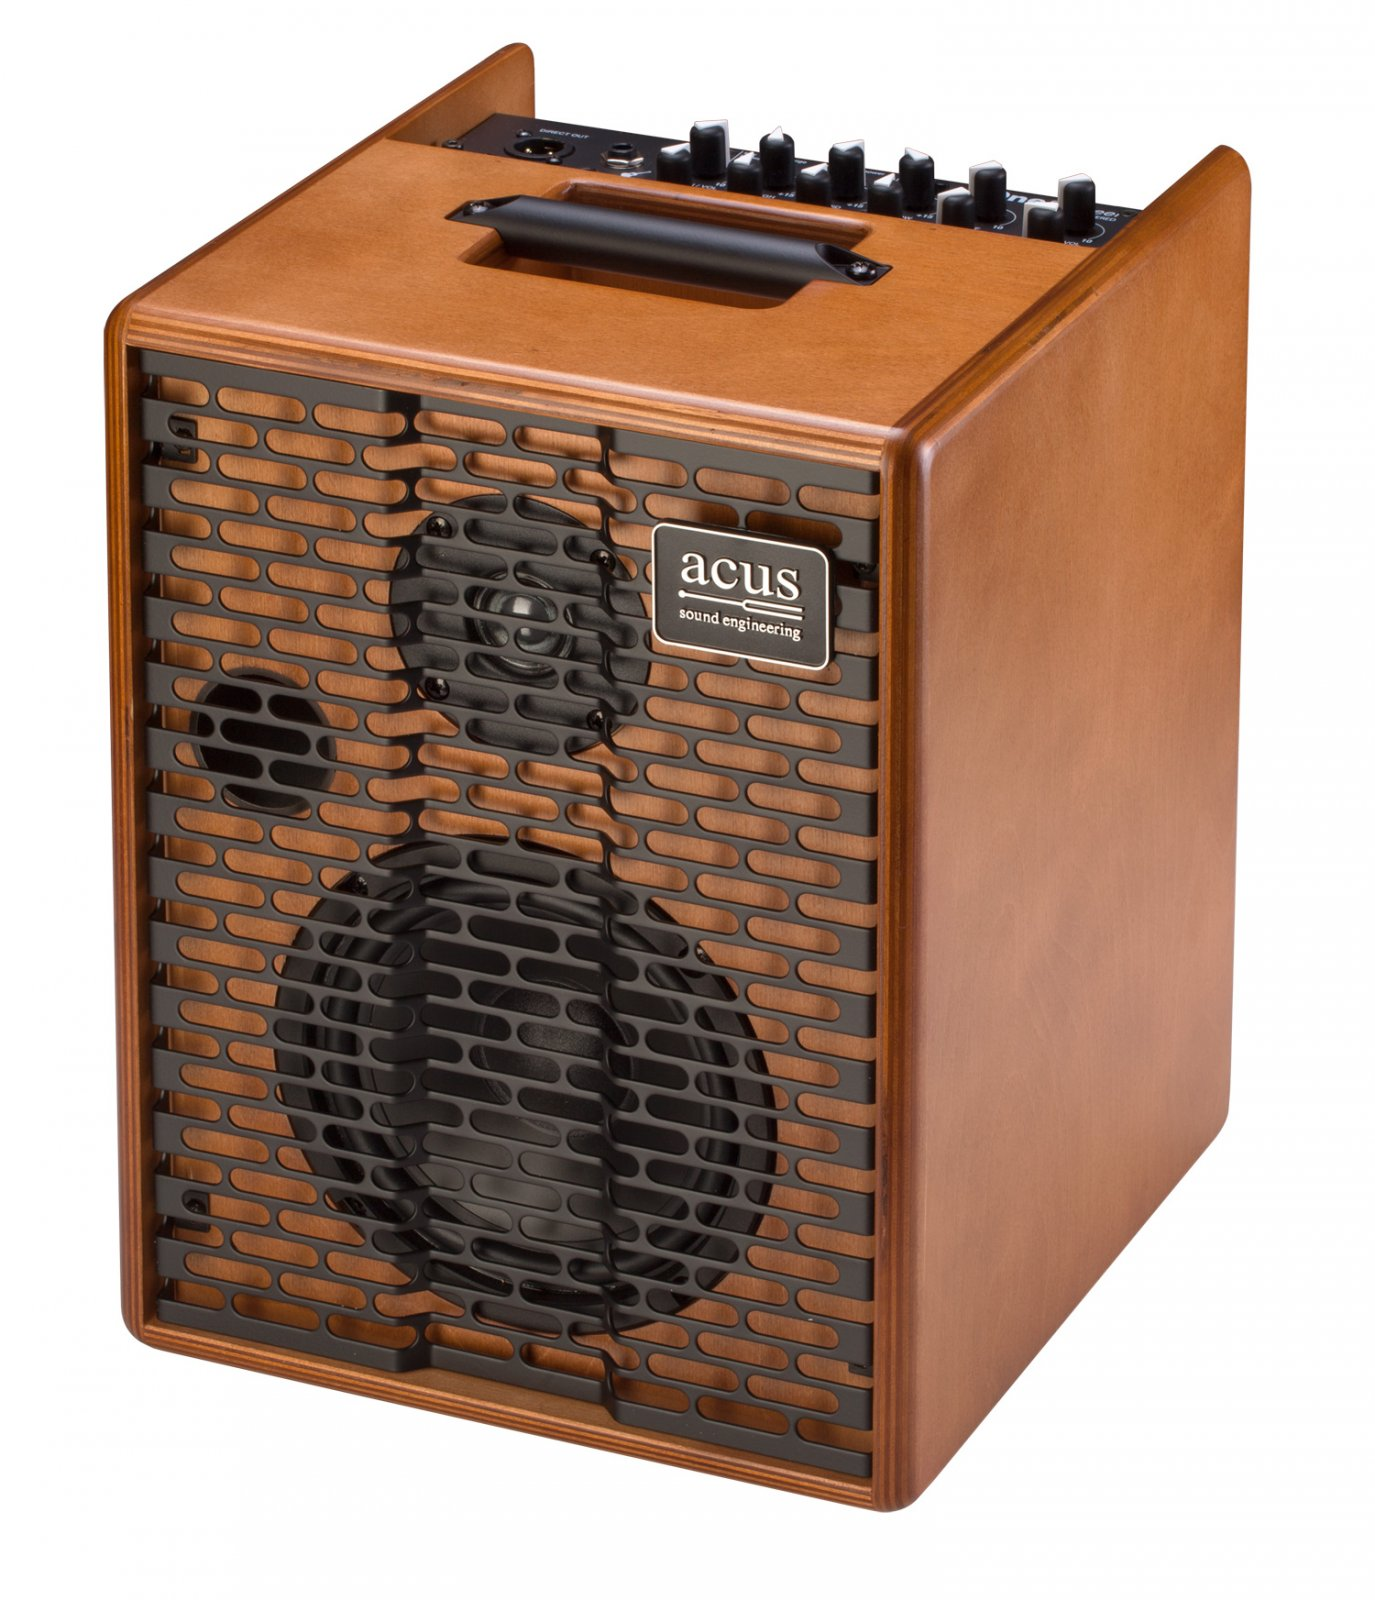 Acus Sound Engineering Oneforstreet Battery Powered Acoustic Amplifier